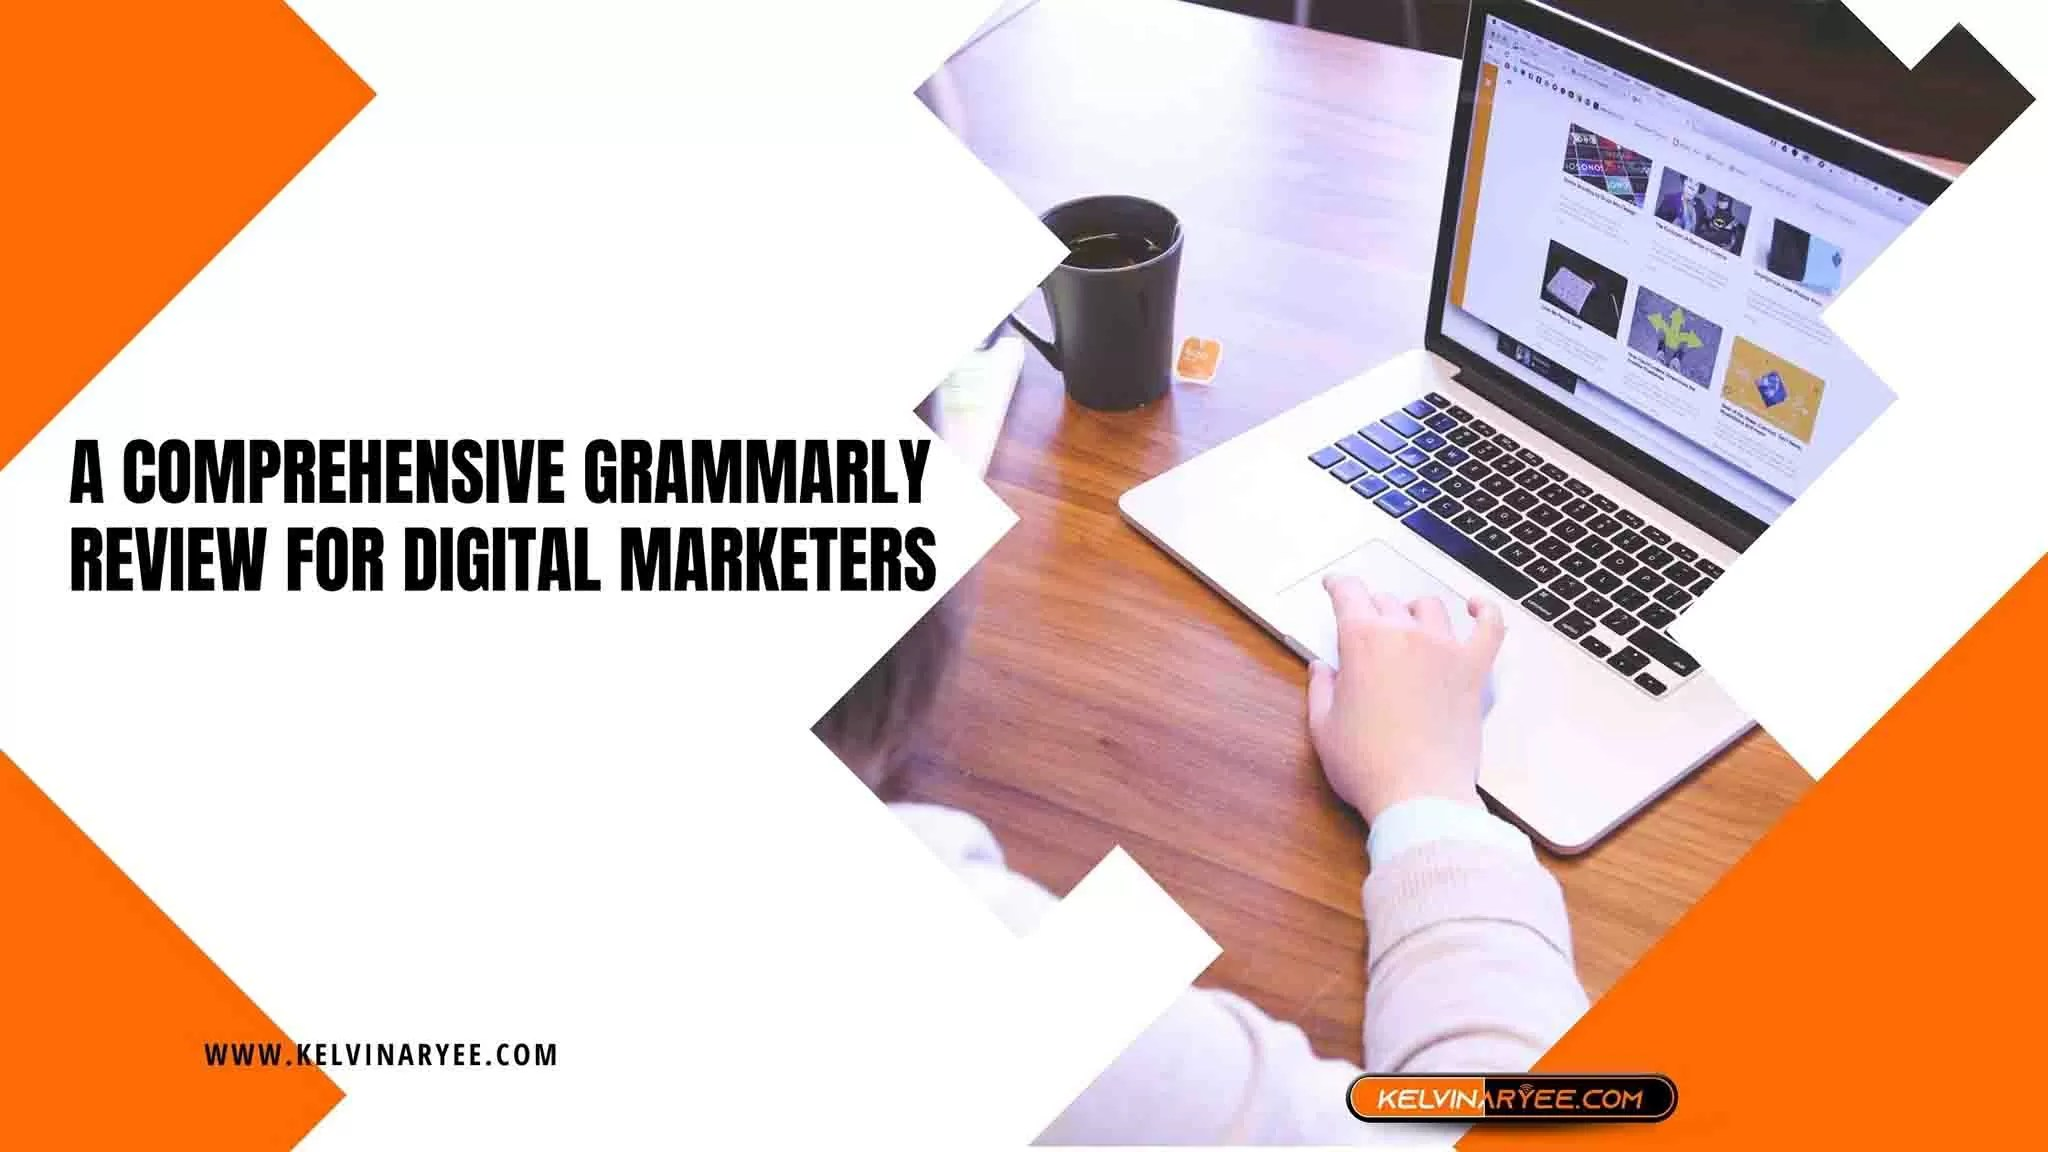 A Comprehensive Grammarly Review for Digital Marketers